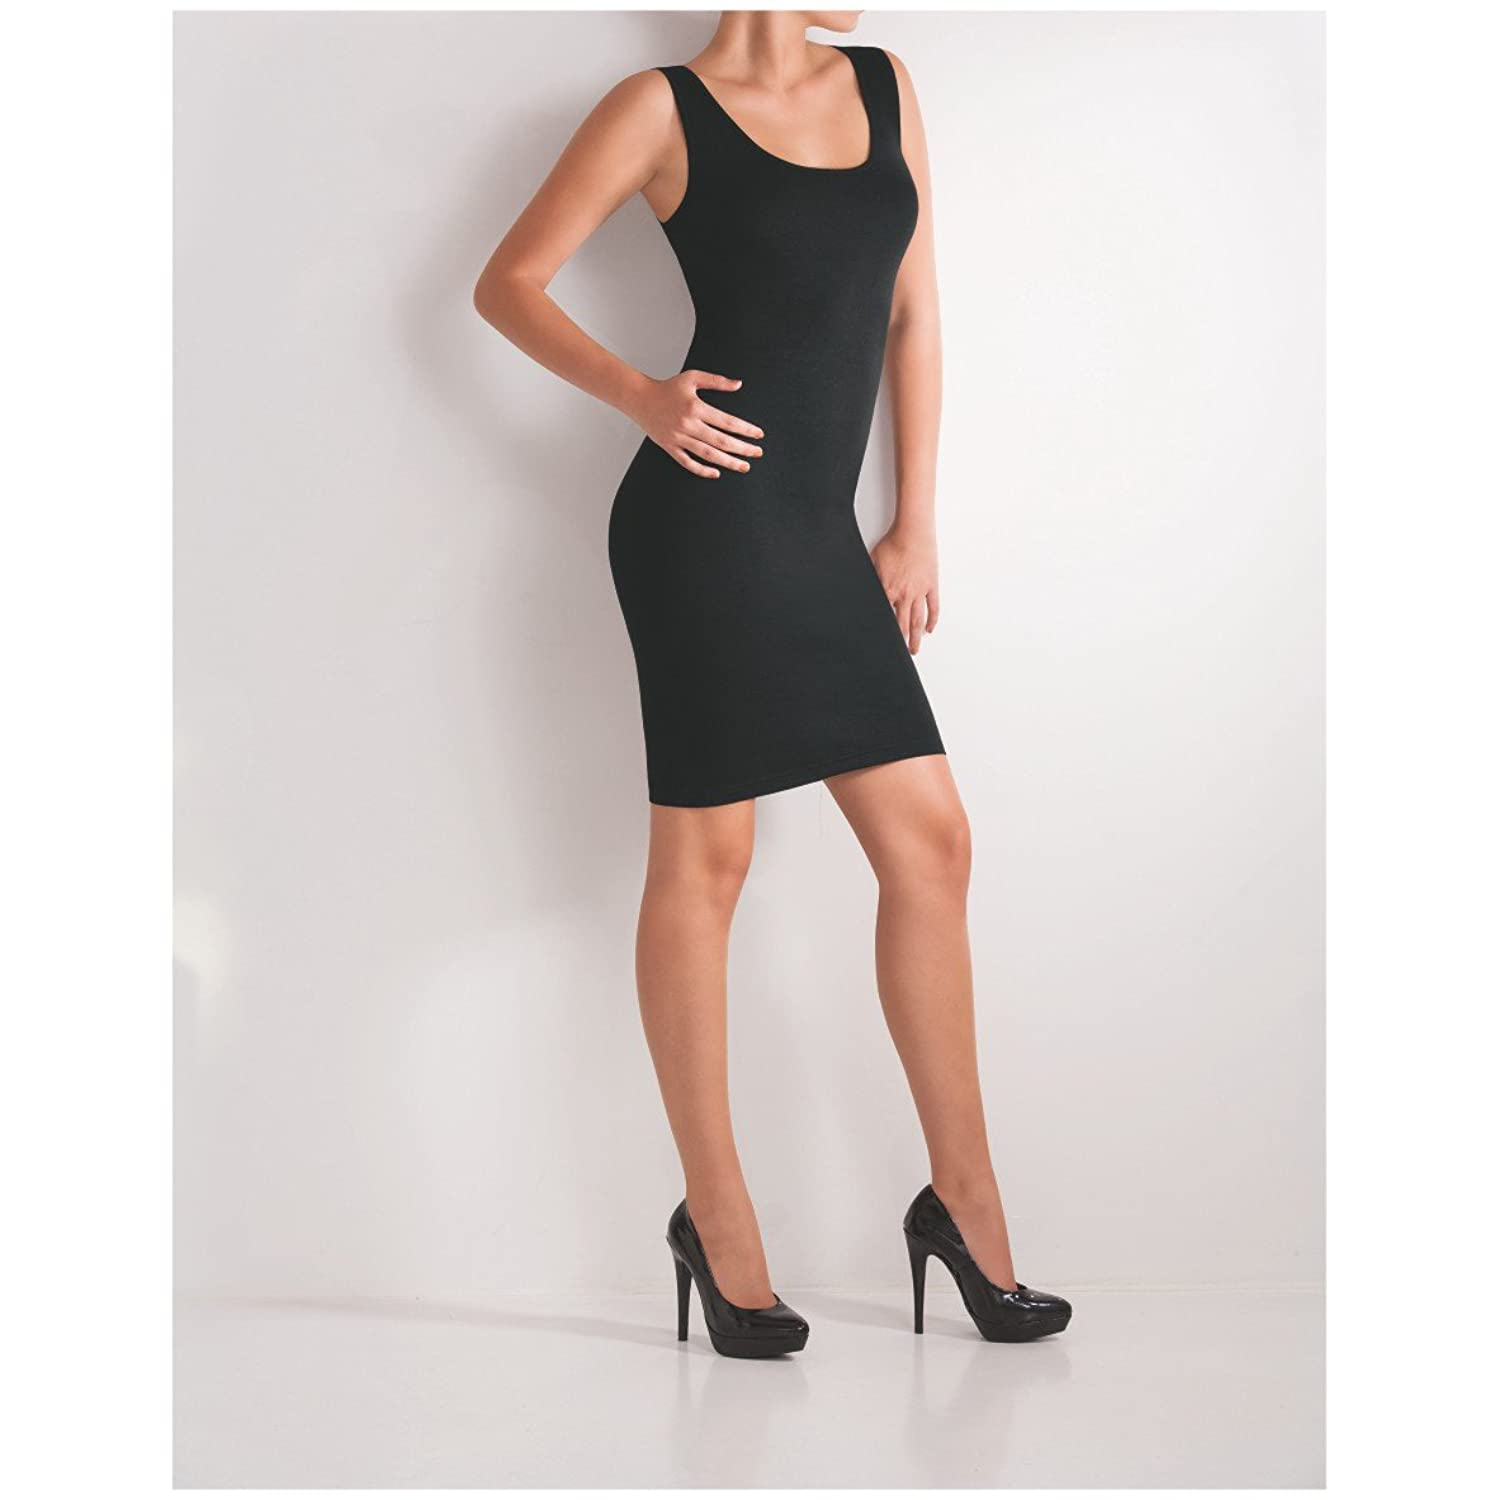 Pompadour Damen Bodydress Intime 3er Pack